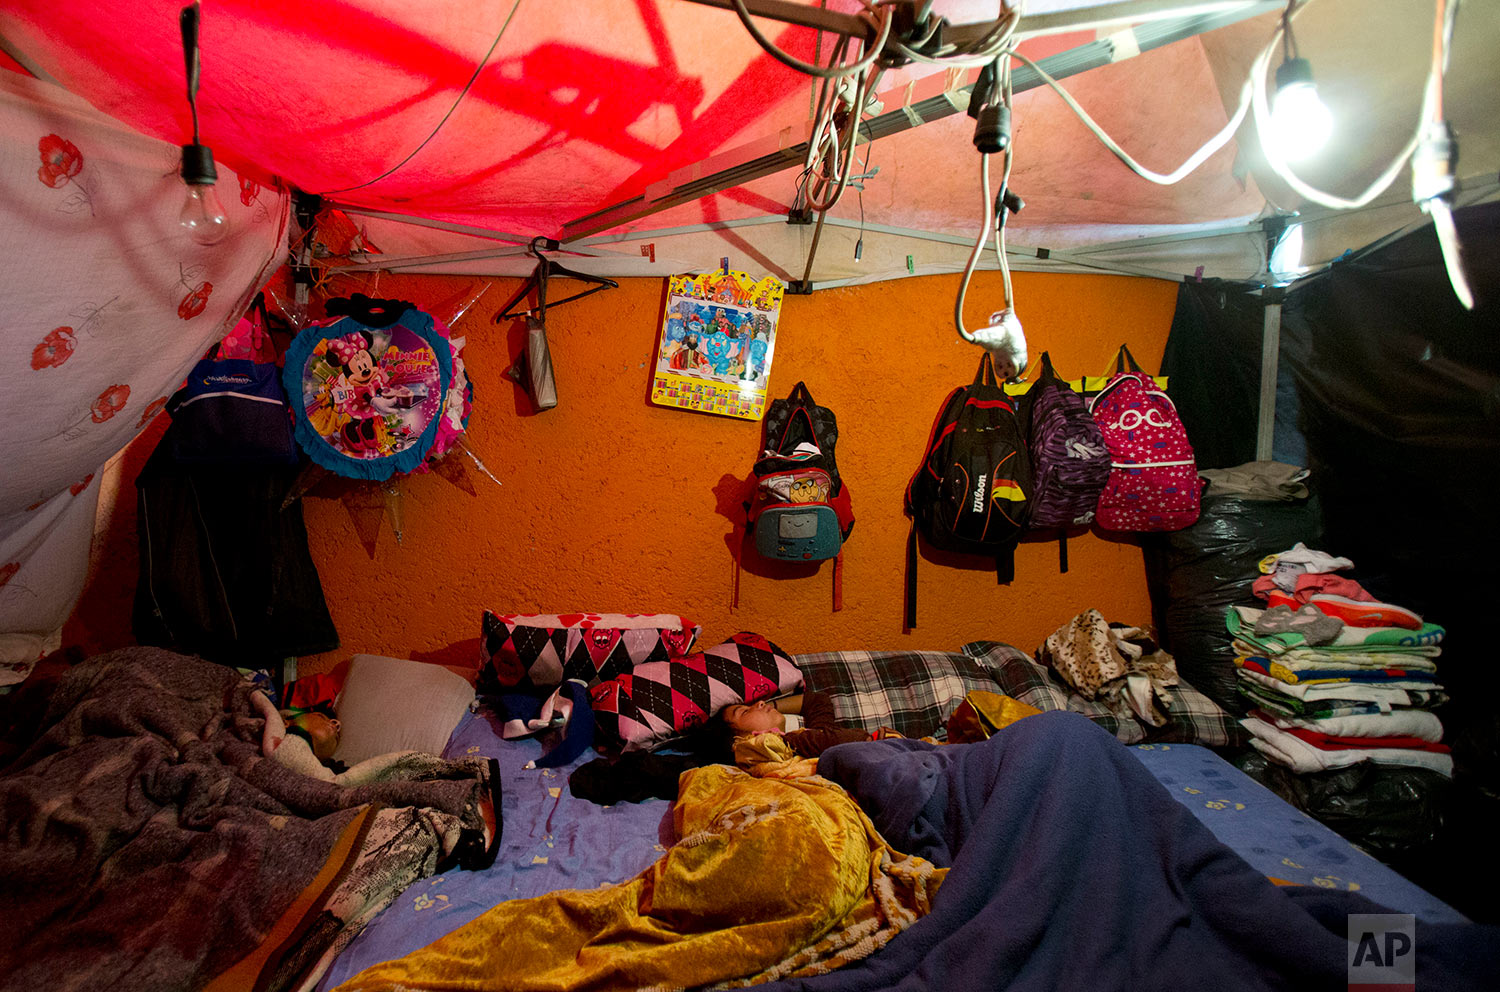 Children sleep in a shelter built against the external wall of a house, at a tent camp outside earthquake-damaged Independencia 18 in Mexico City, Jan. 5, 2018. (AP Photo/Rebecca Blackwell)